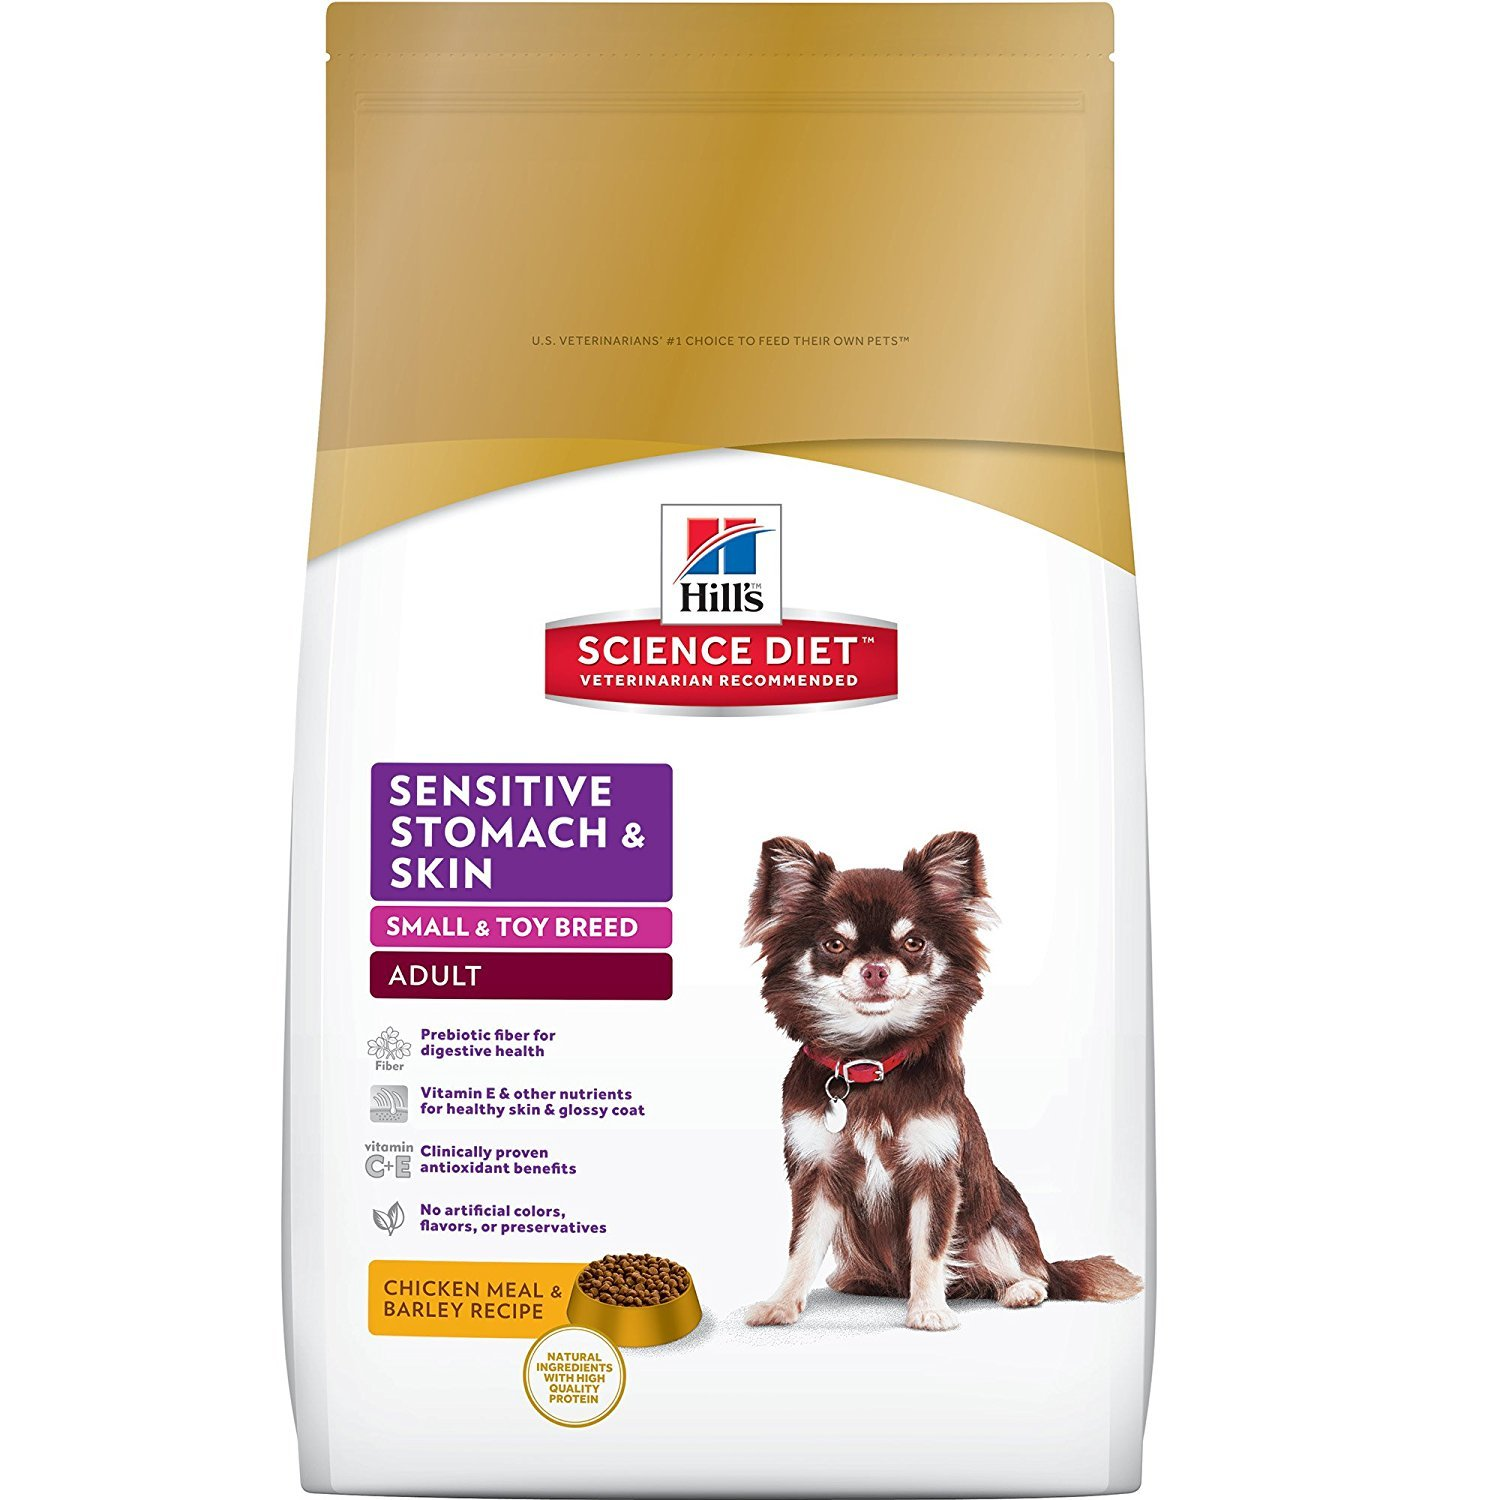 Hill's Science Diet Adult Sensitive Stomach & Skin Dry Dog Food Small Breed